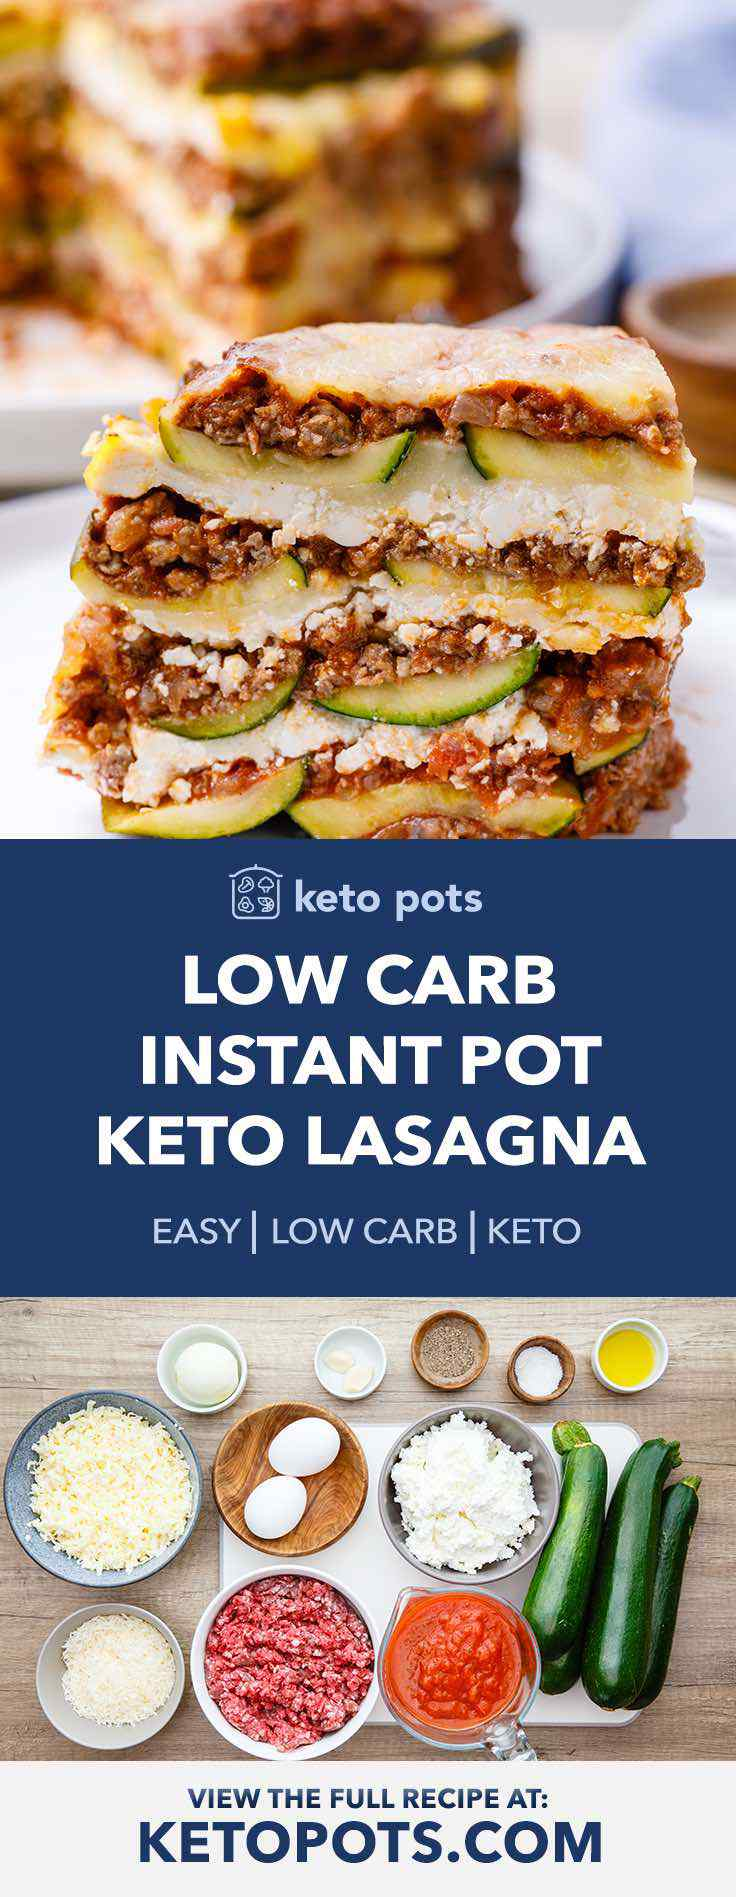 Low Carb Instant Pot Keto Lasagna